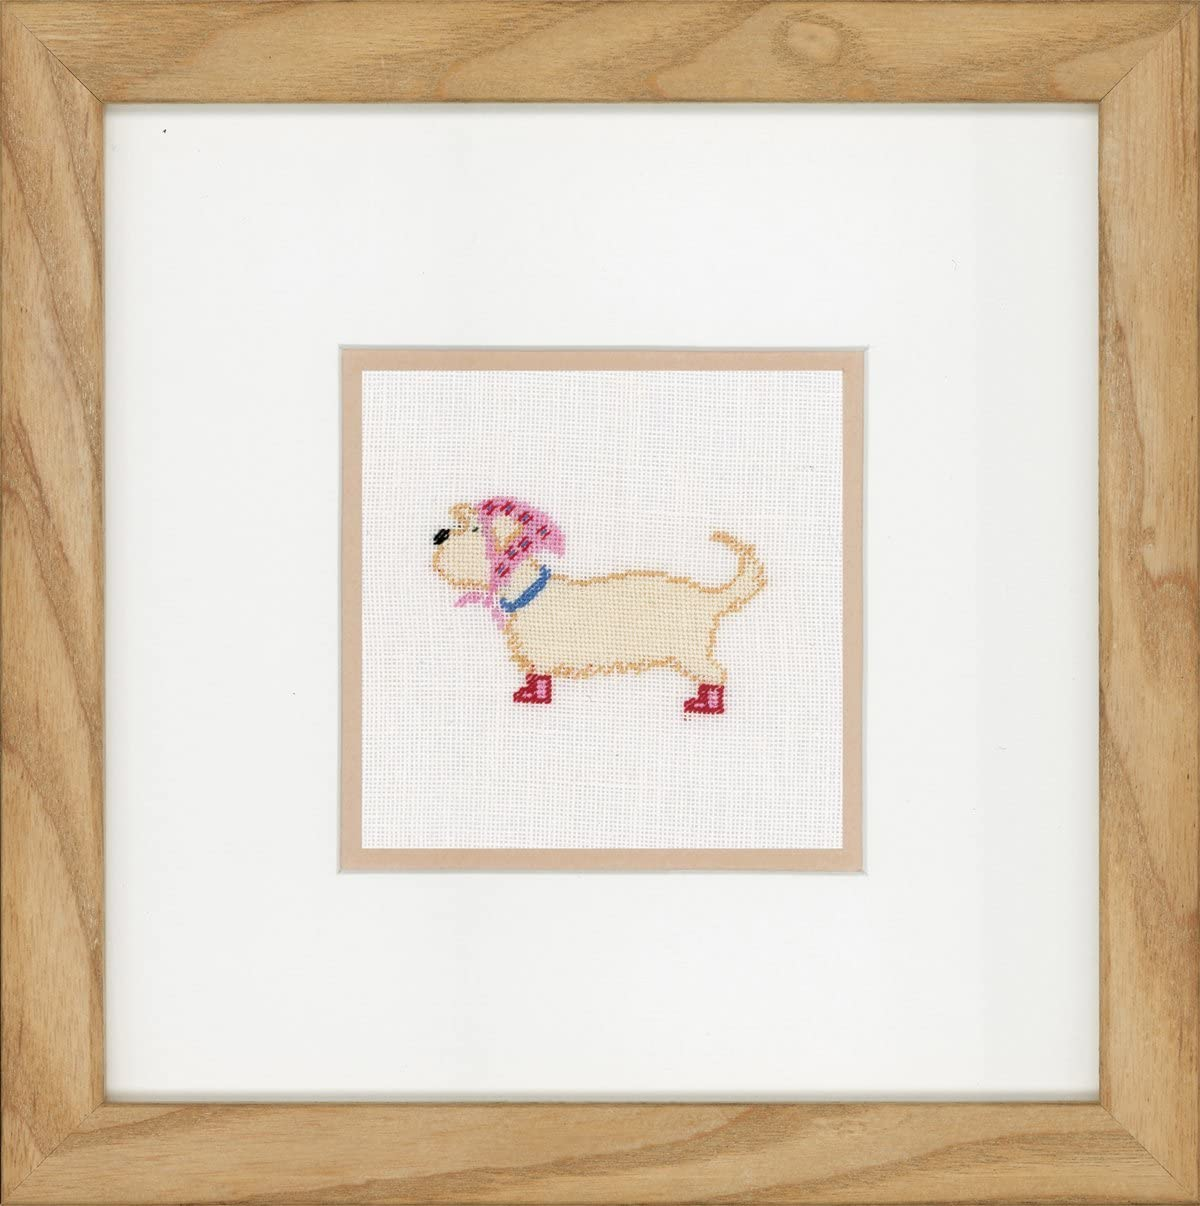 Counted Cross Stitch Kit: in Dog Japan's largest Max 40% OFF assortment Linen Scarf